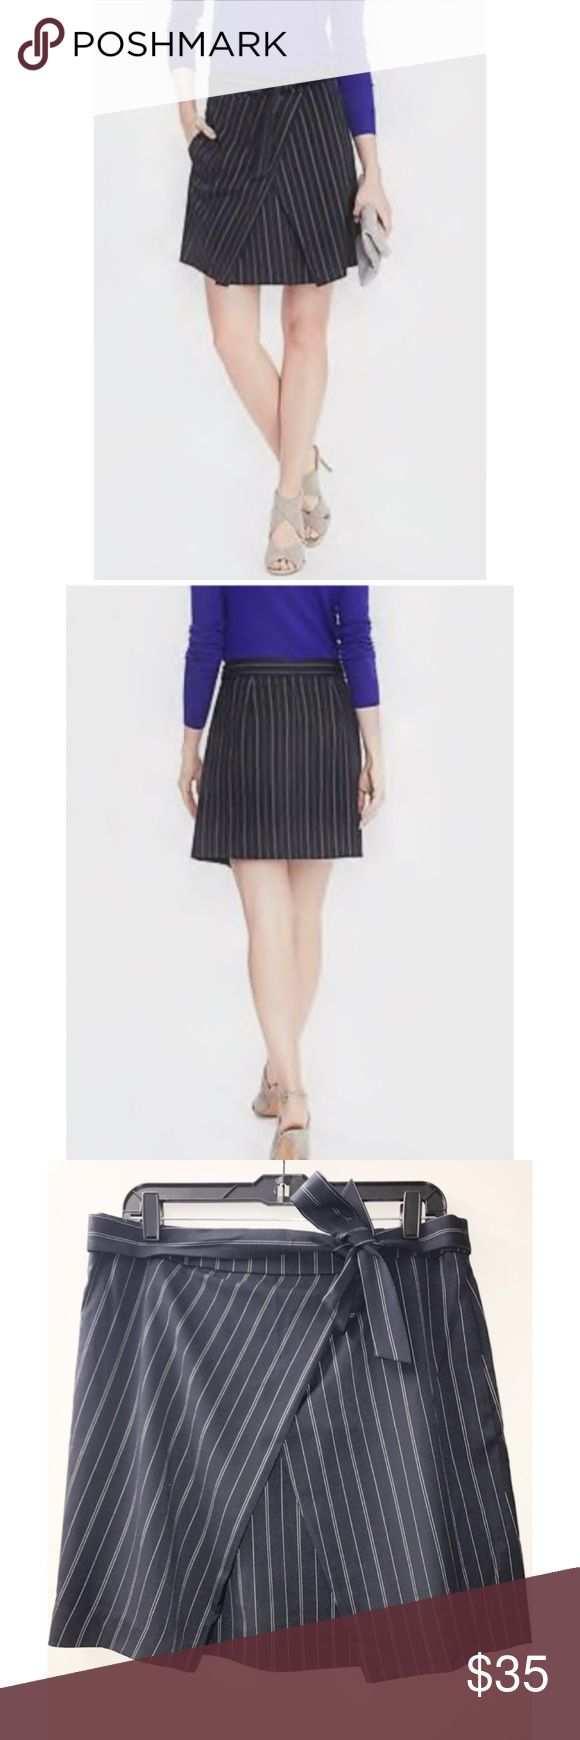 Banana Republic Front Tie Pinstripe Skirt NWT Banana Republic Front Tie Pinstripe Skirt size 8.  Navy with white pinstripes.  Has pockets. Banana Republic Skirts Mini